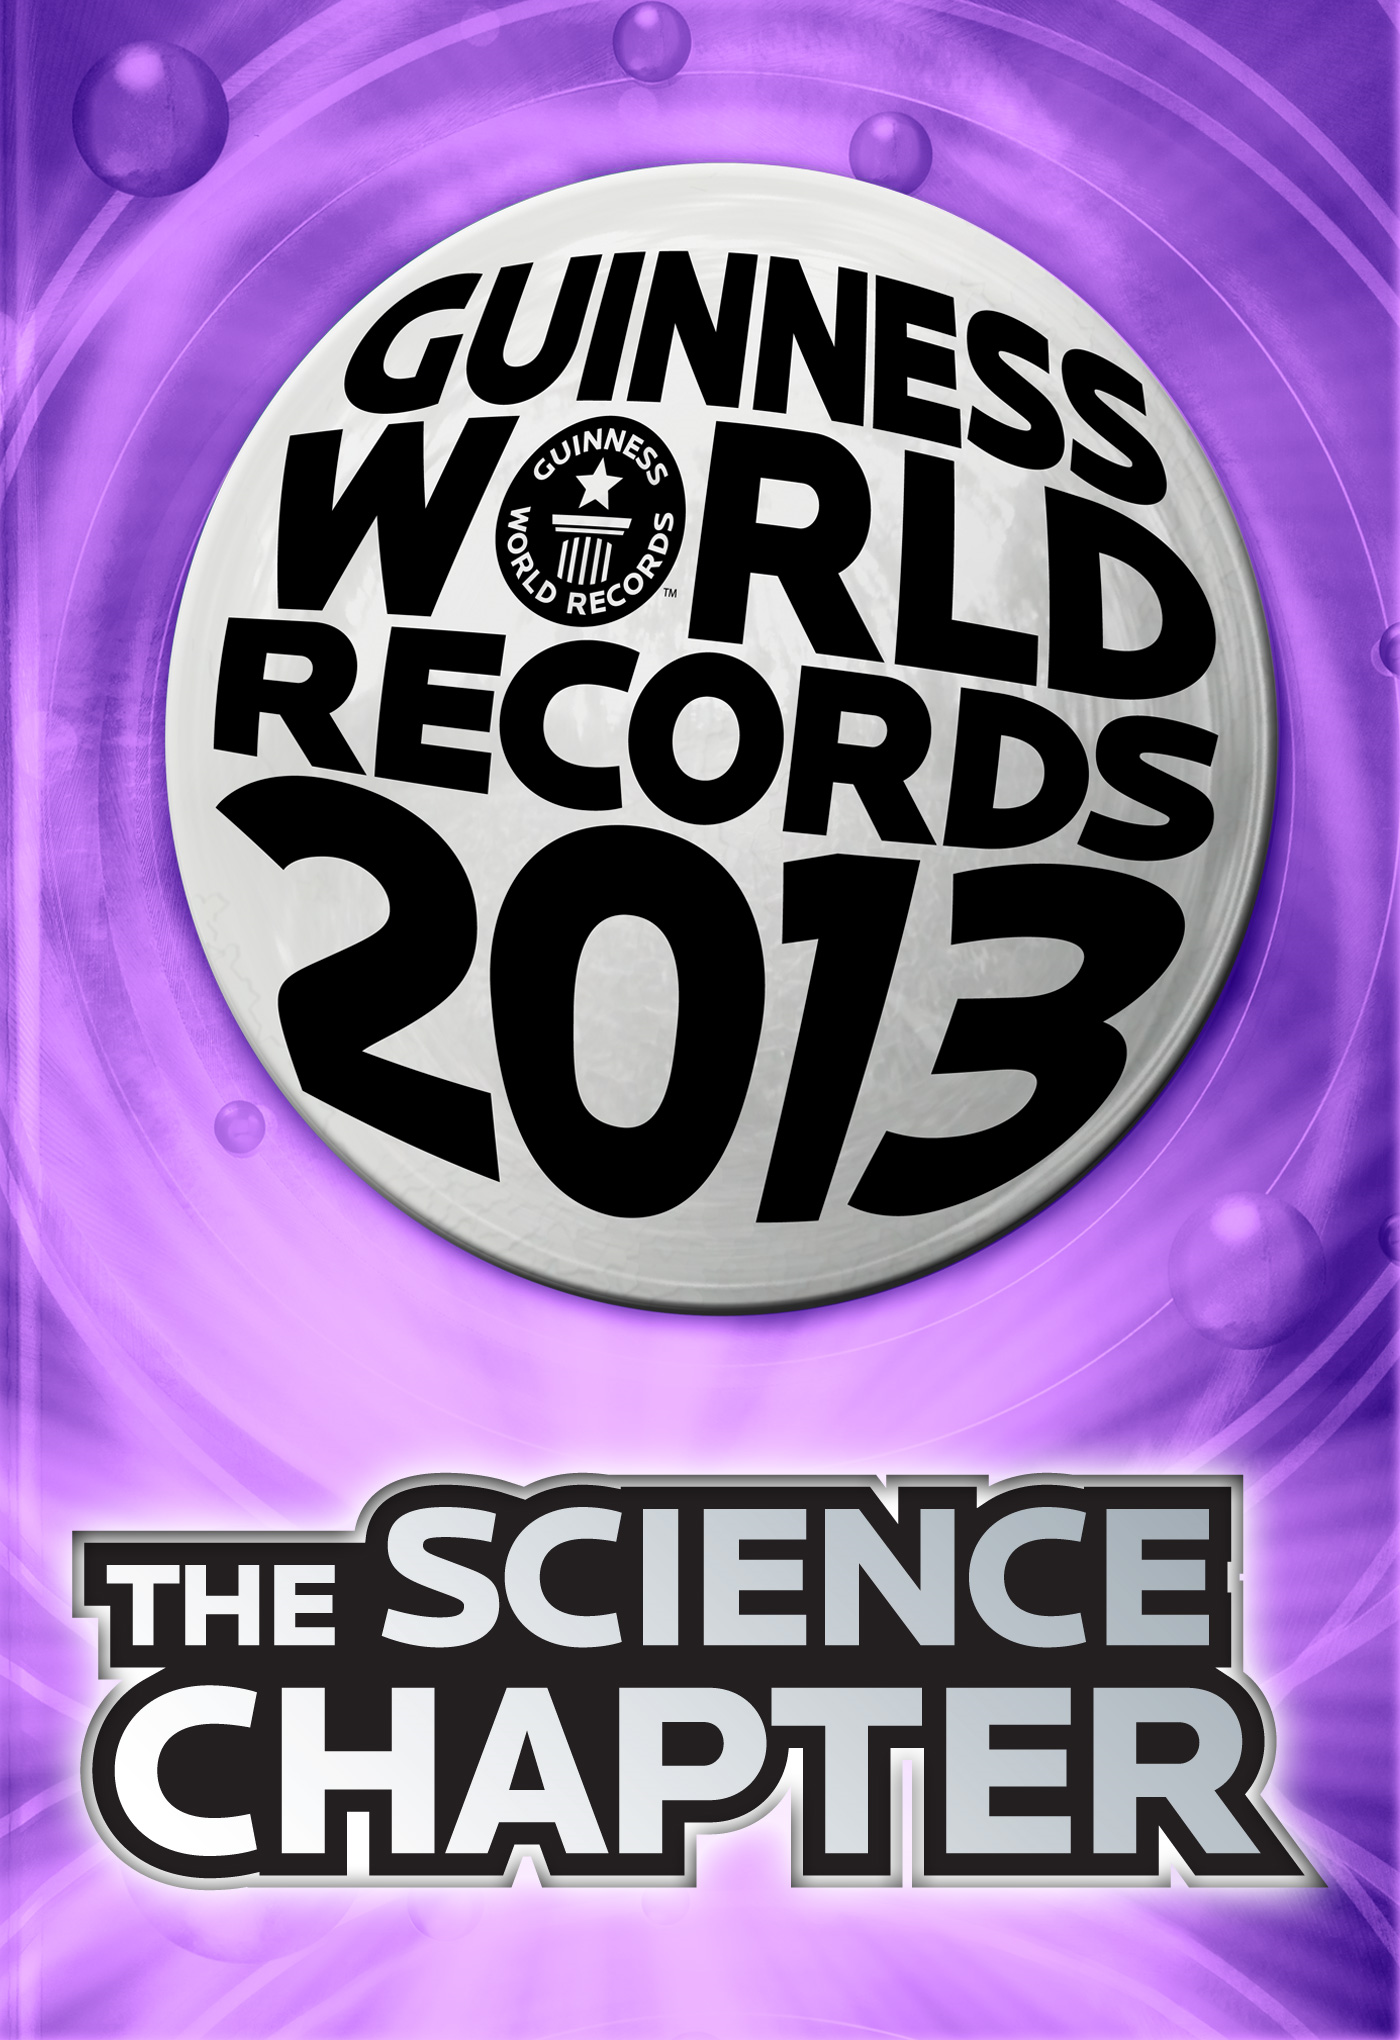 Guinness World Records 2013 - The Science Chapter